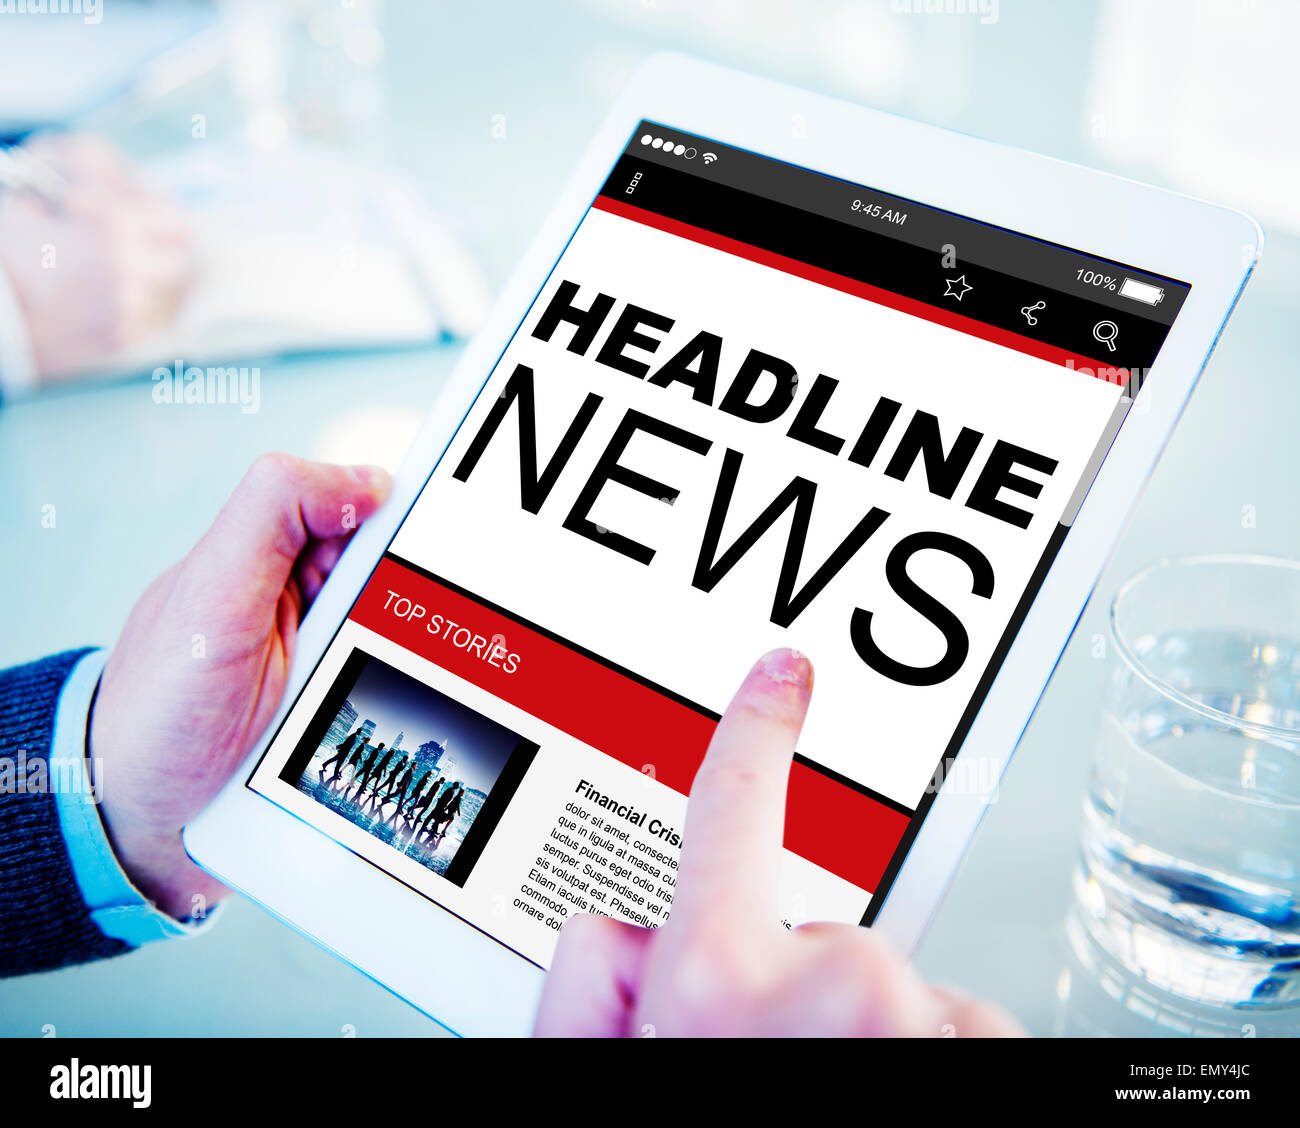 Headline News Top Stories Online Concepts - Stock Image